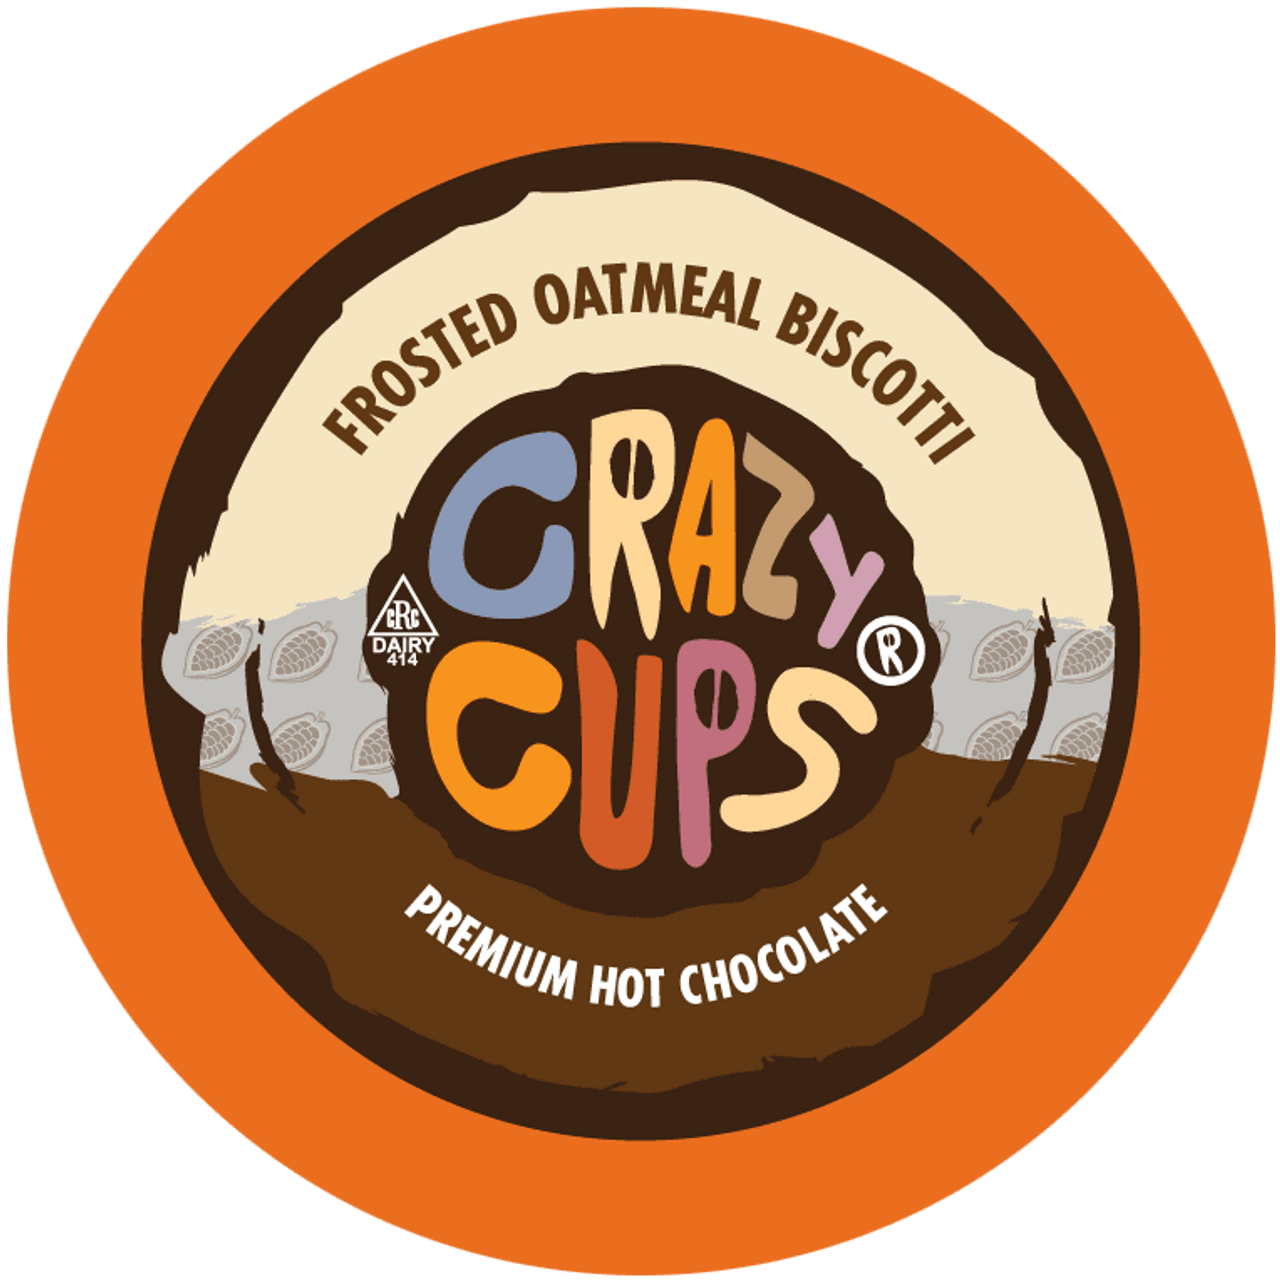 Frosted Oatmeal Biscotti Hot Chocolate by Crazy Cups